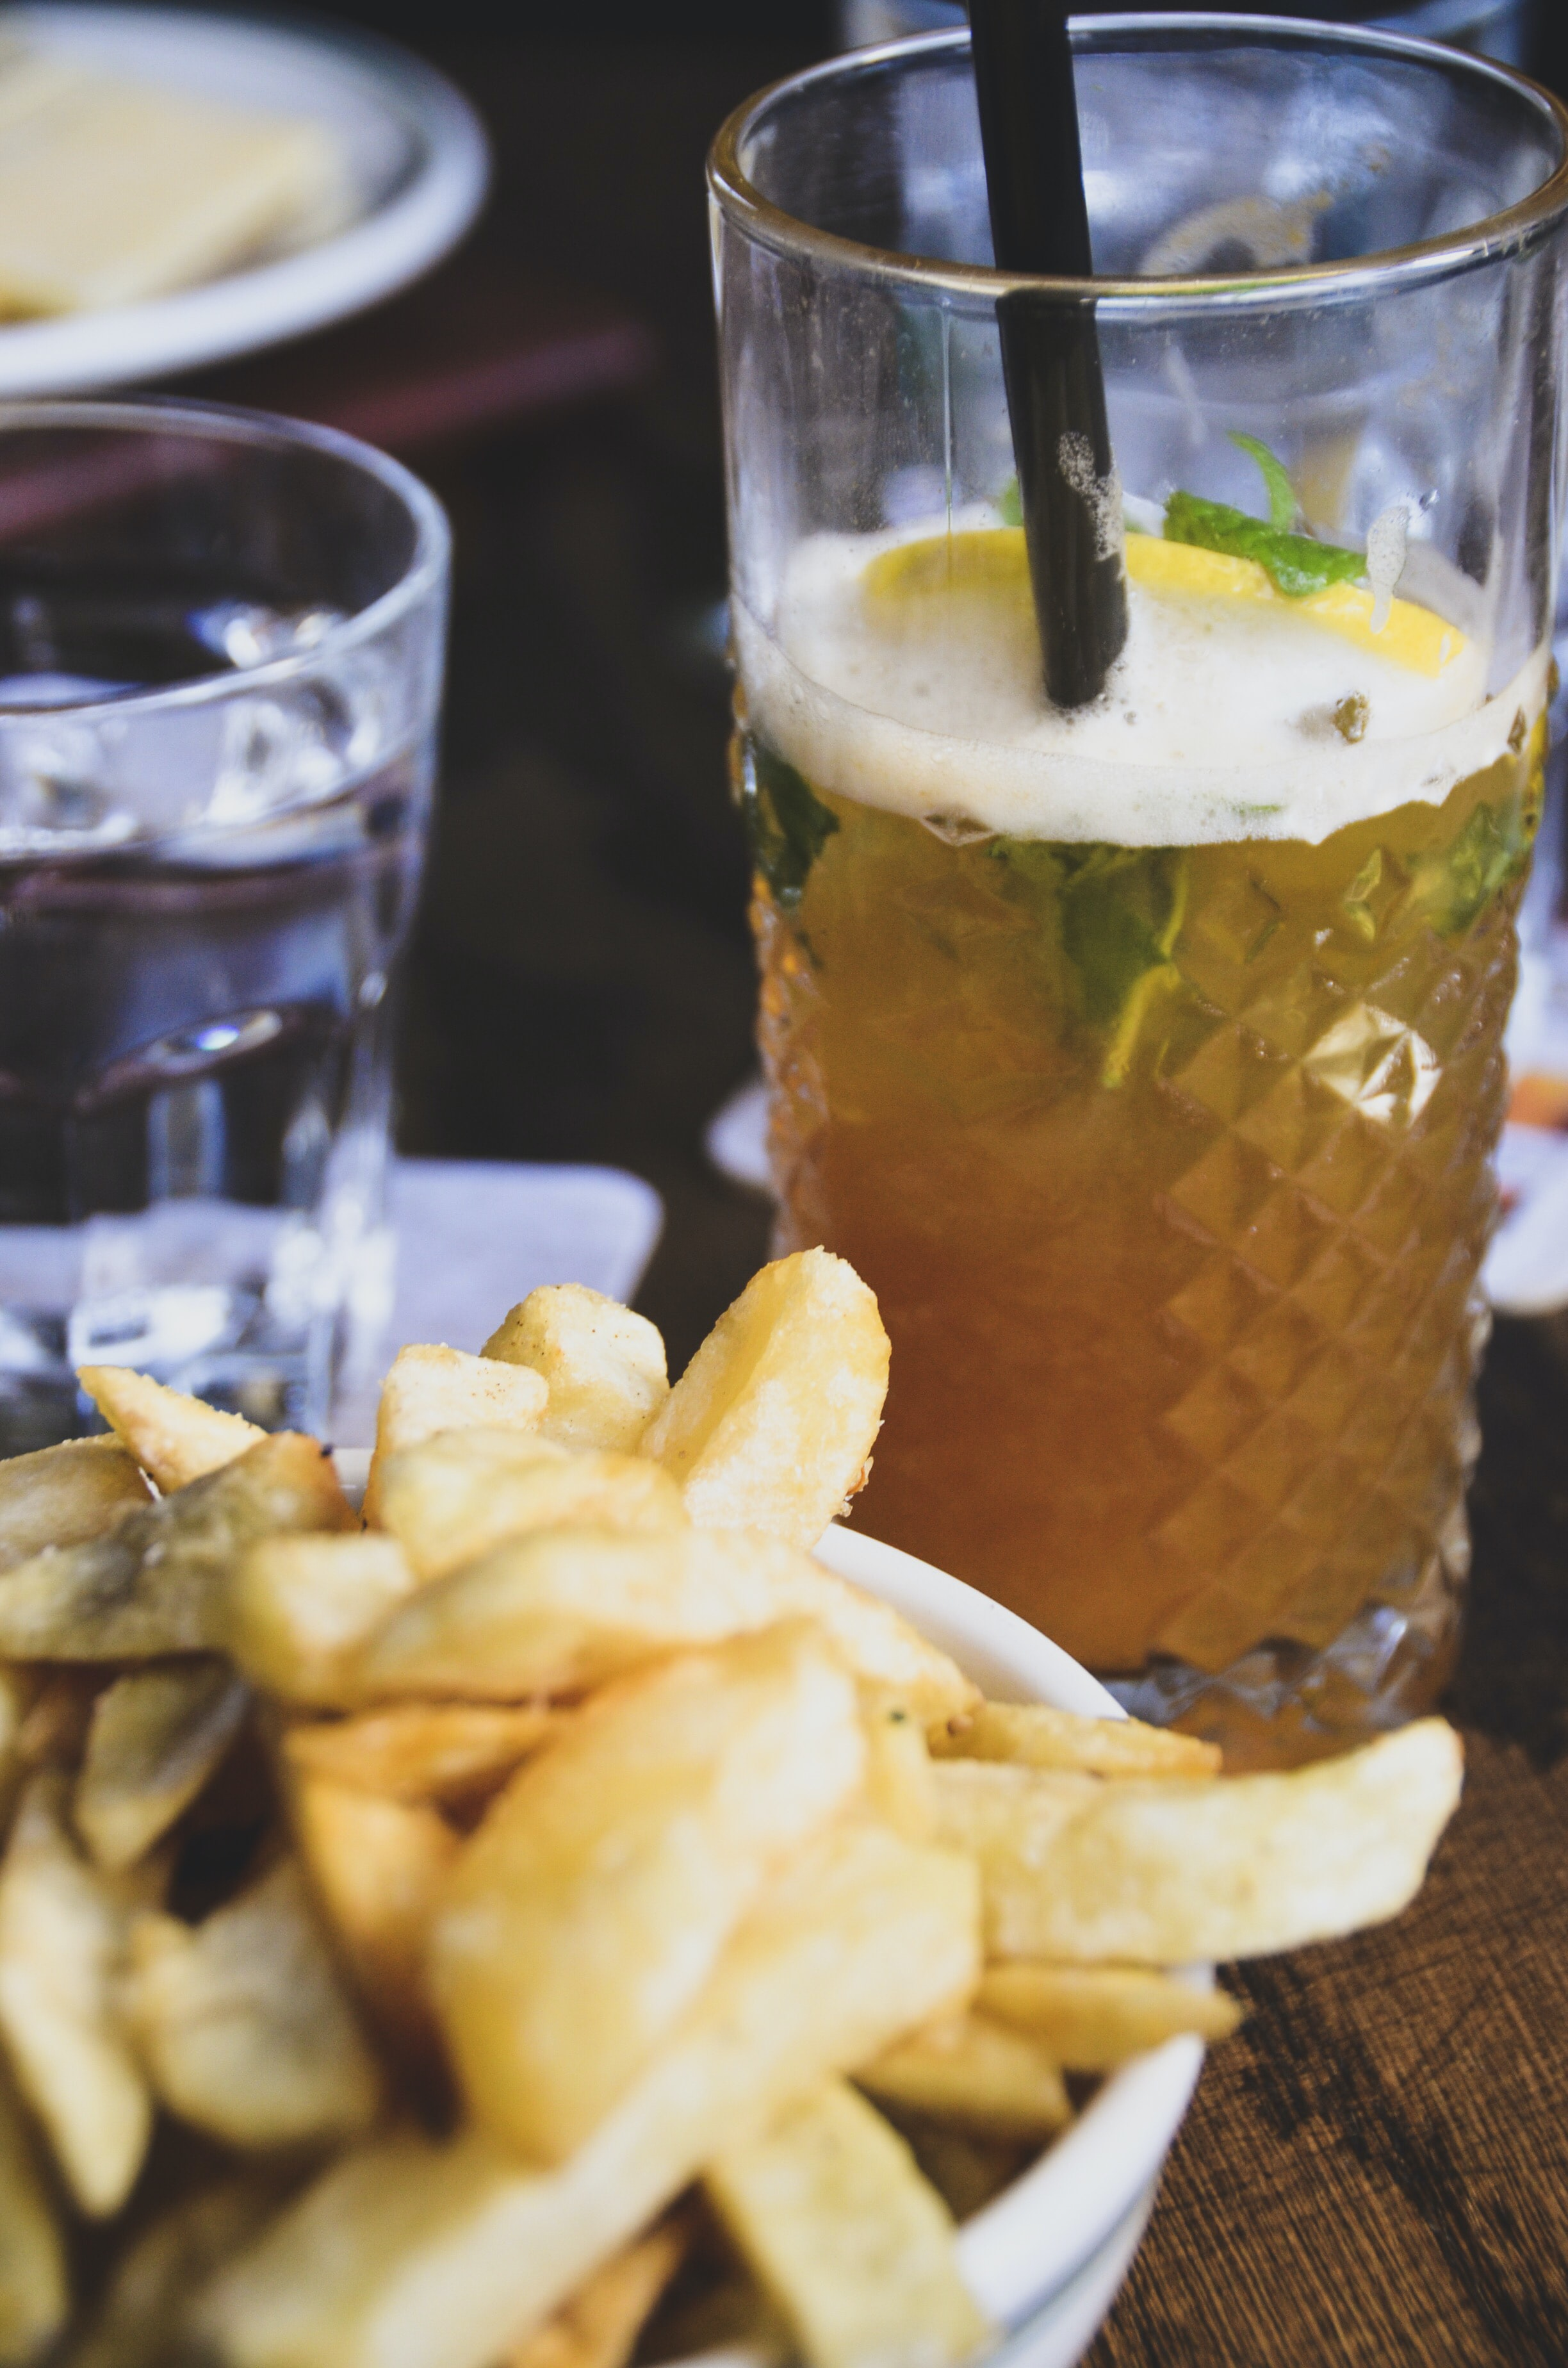 french fries and glass of juice